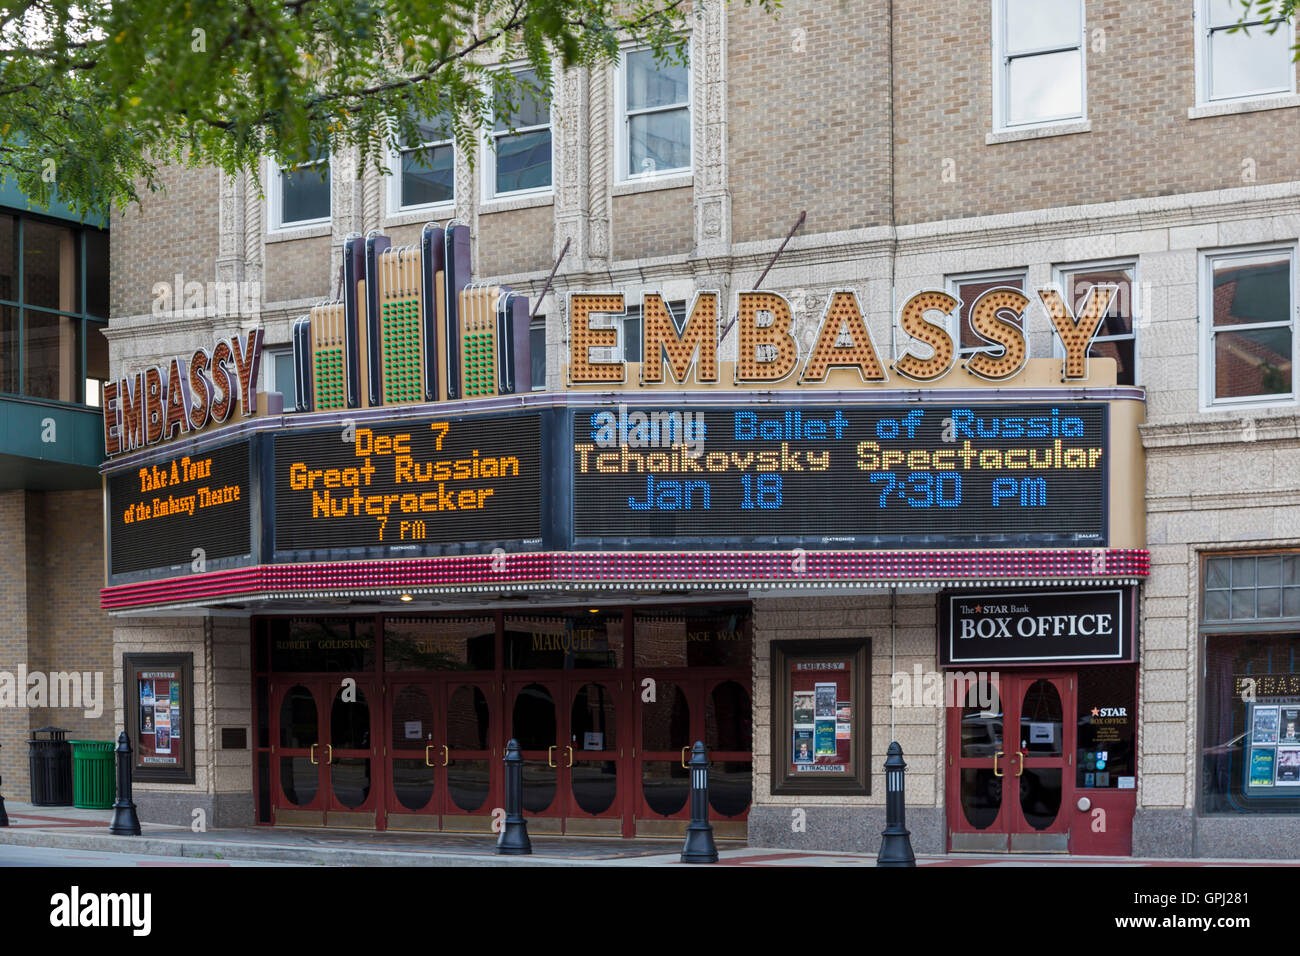 Fort Wayne, Indiana - The Embassy Theatre, a performing arts center. - Stock Image